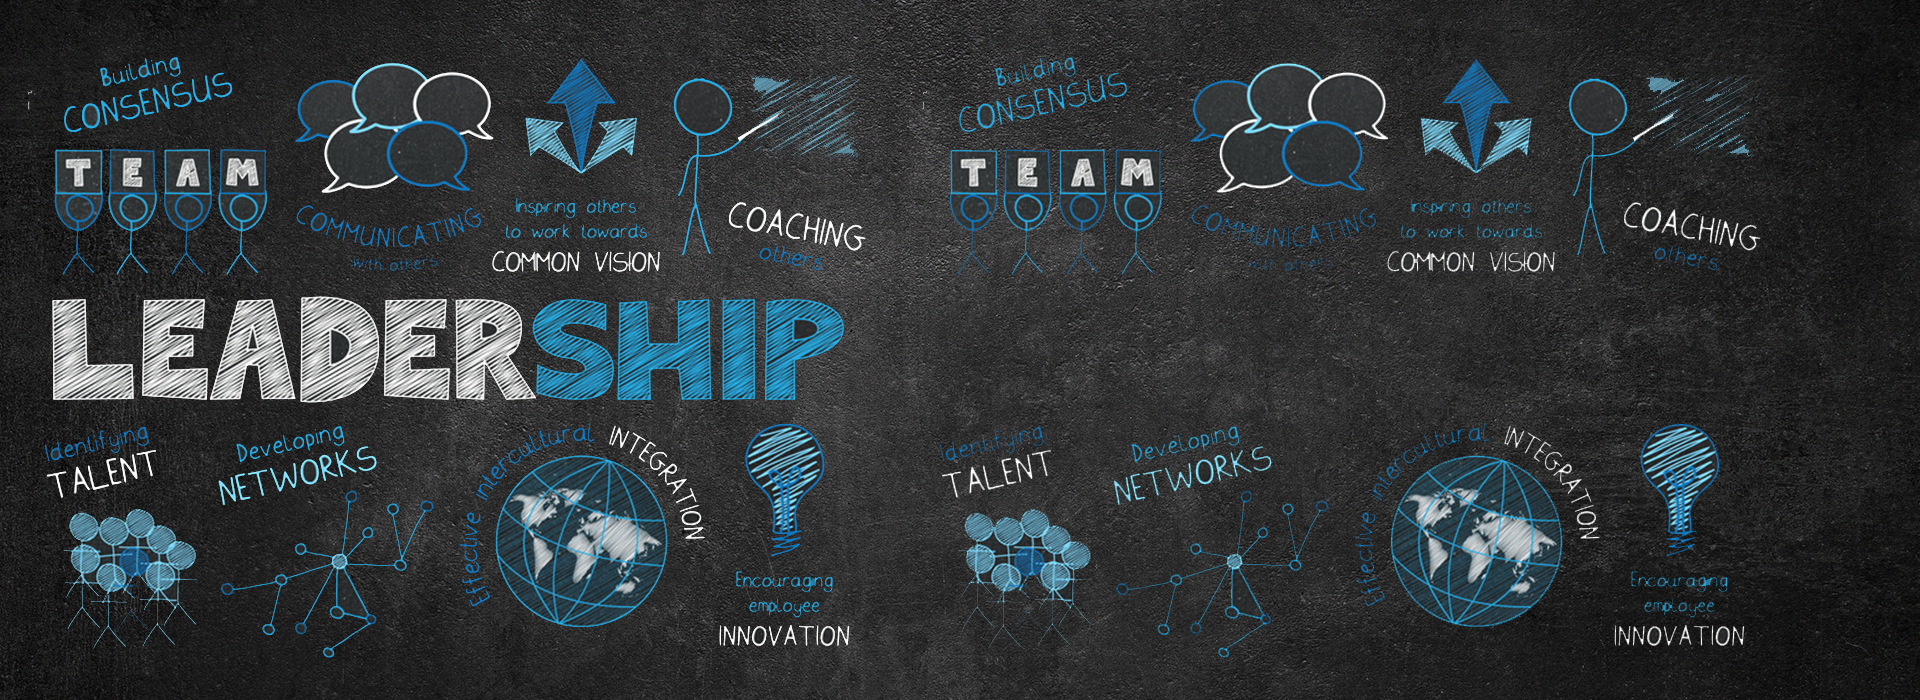 Learn how Leadership Skills can impact your Business